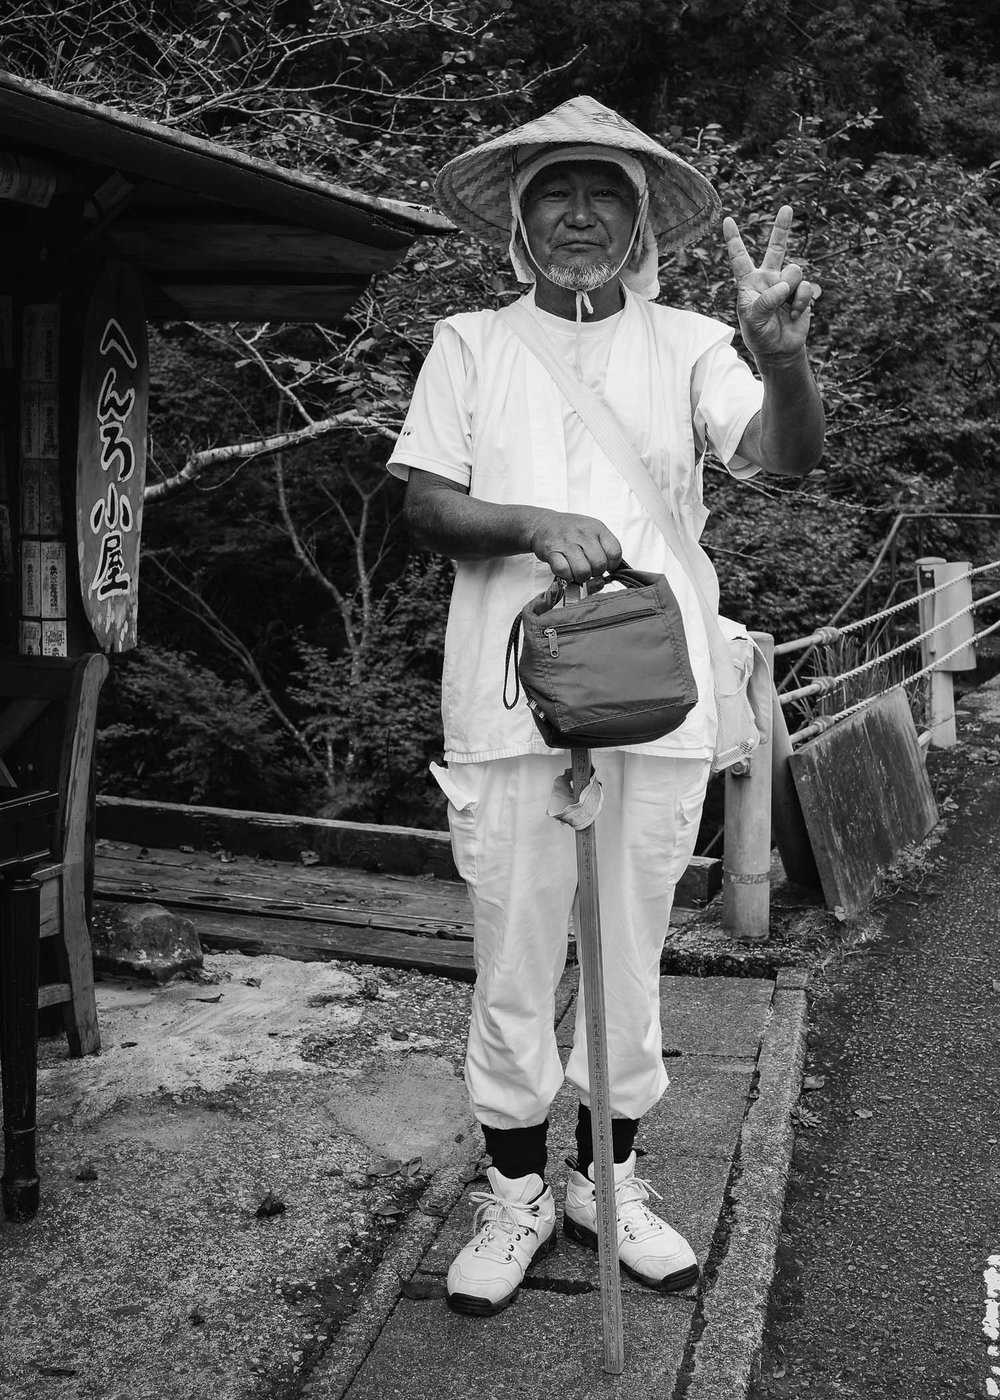 2015: A kind Henro smiles for a portrait at a roadside shelter on Cape Ashizuri where I'd spent the previous night. This year I made it there in the morning after getting lost the (rainy) night before & having to crawl under the eaves of a village shrine to attempt sleep.